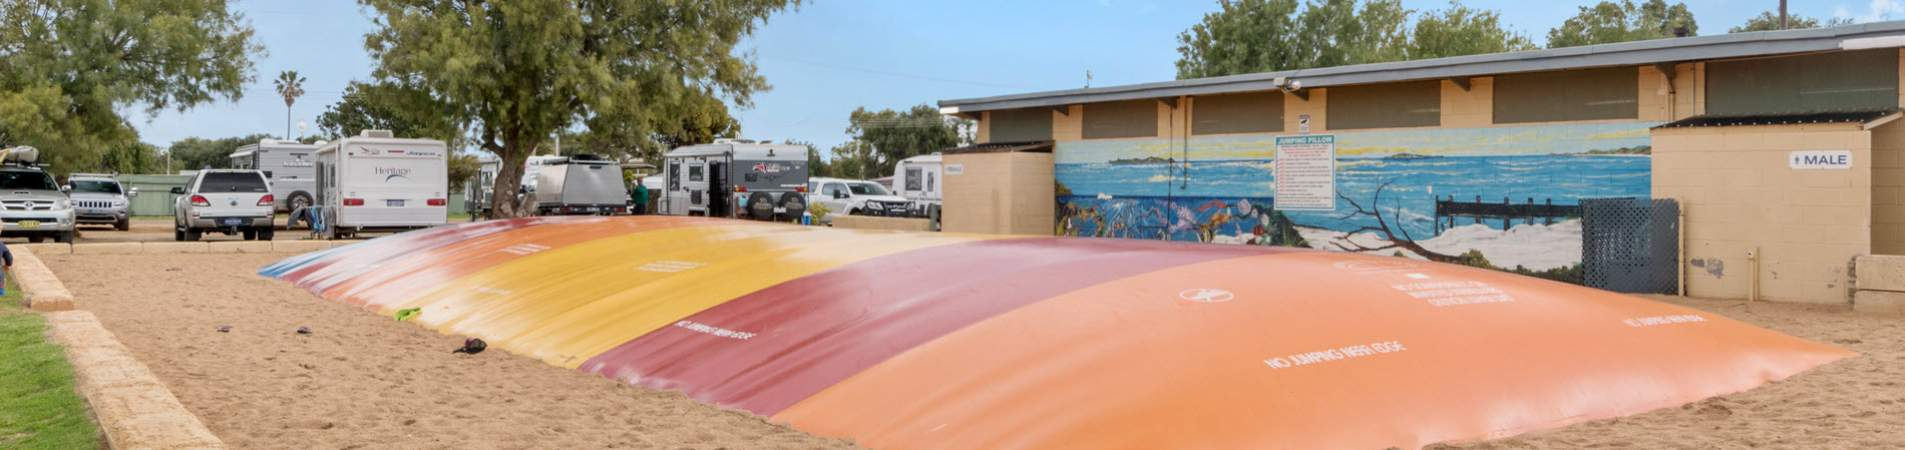 jurien bay tourist park facilities - banner 1